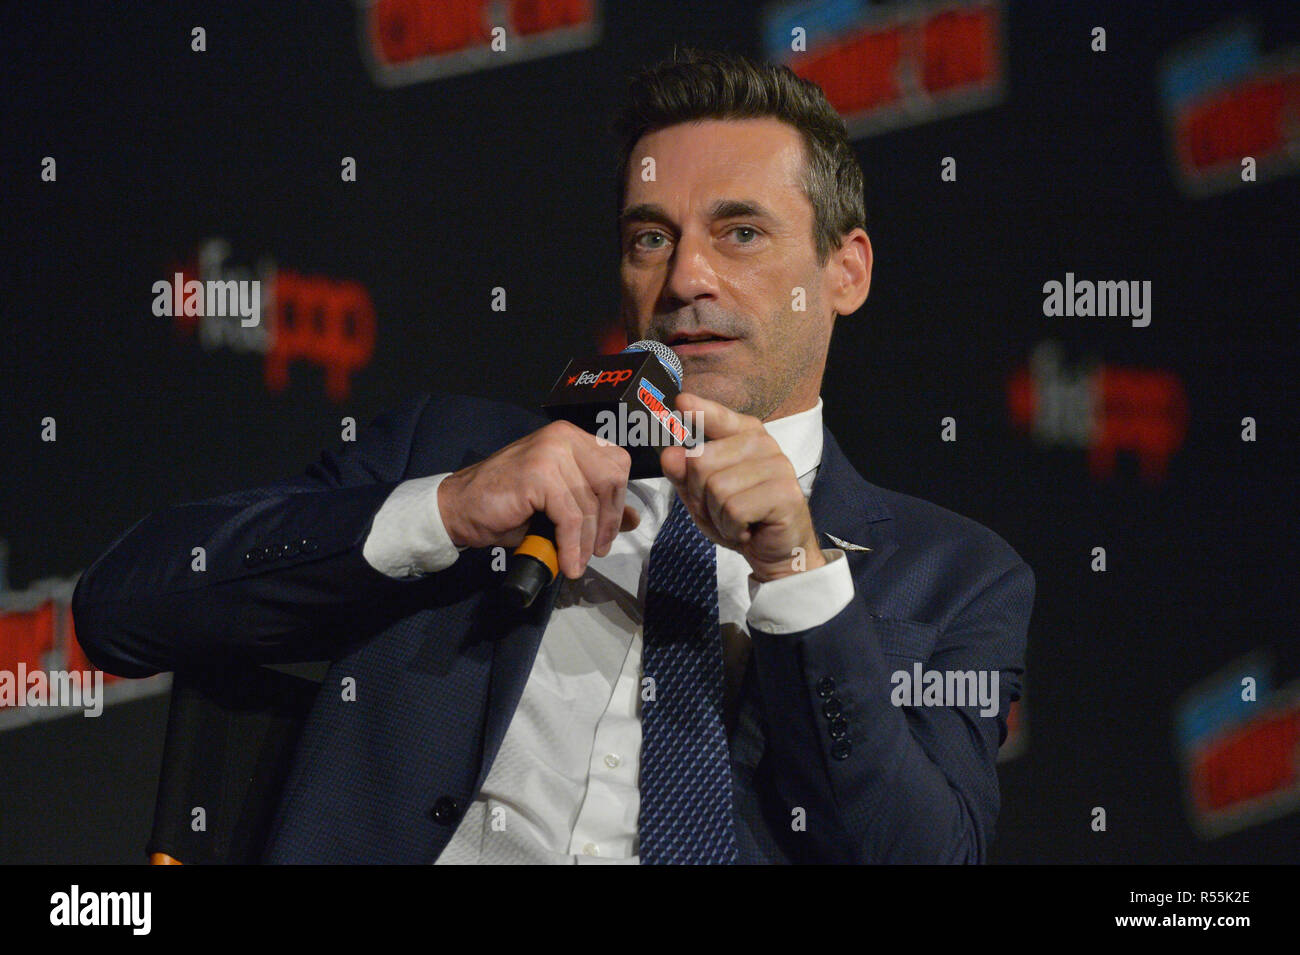 Jon Hamm attends the 'Good Omens' TV show panel at New York Comic Con on October 6, 2018 in New York City. - Stock Image